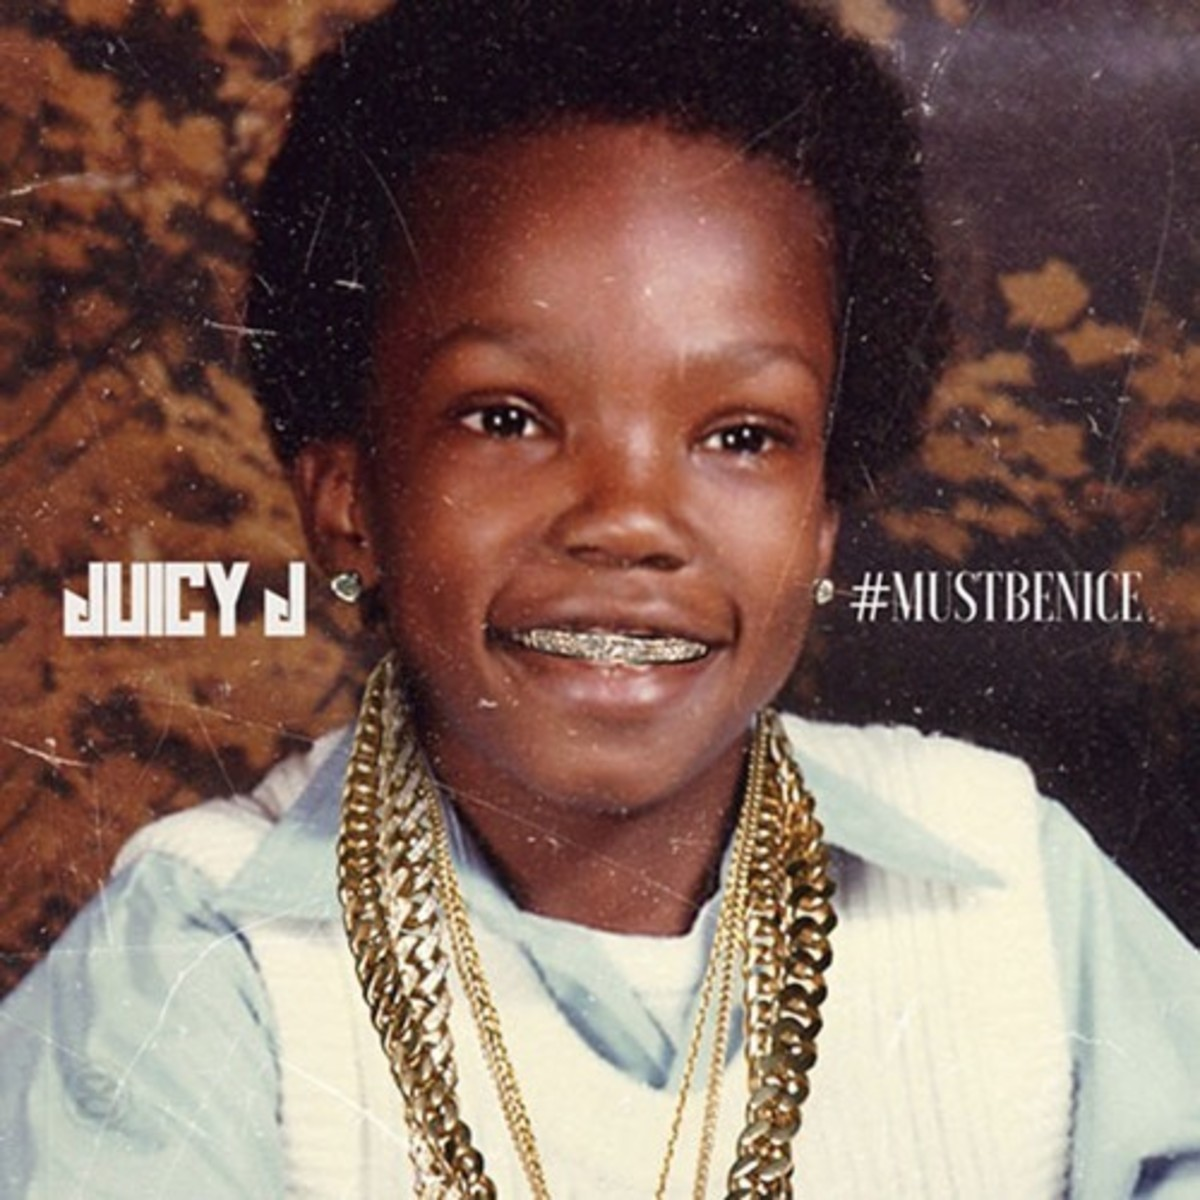 juicy-j-must-be-nice.jpg